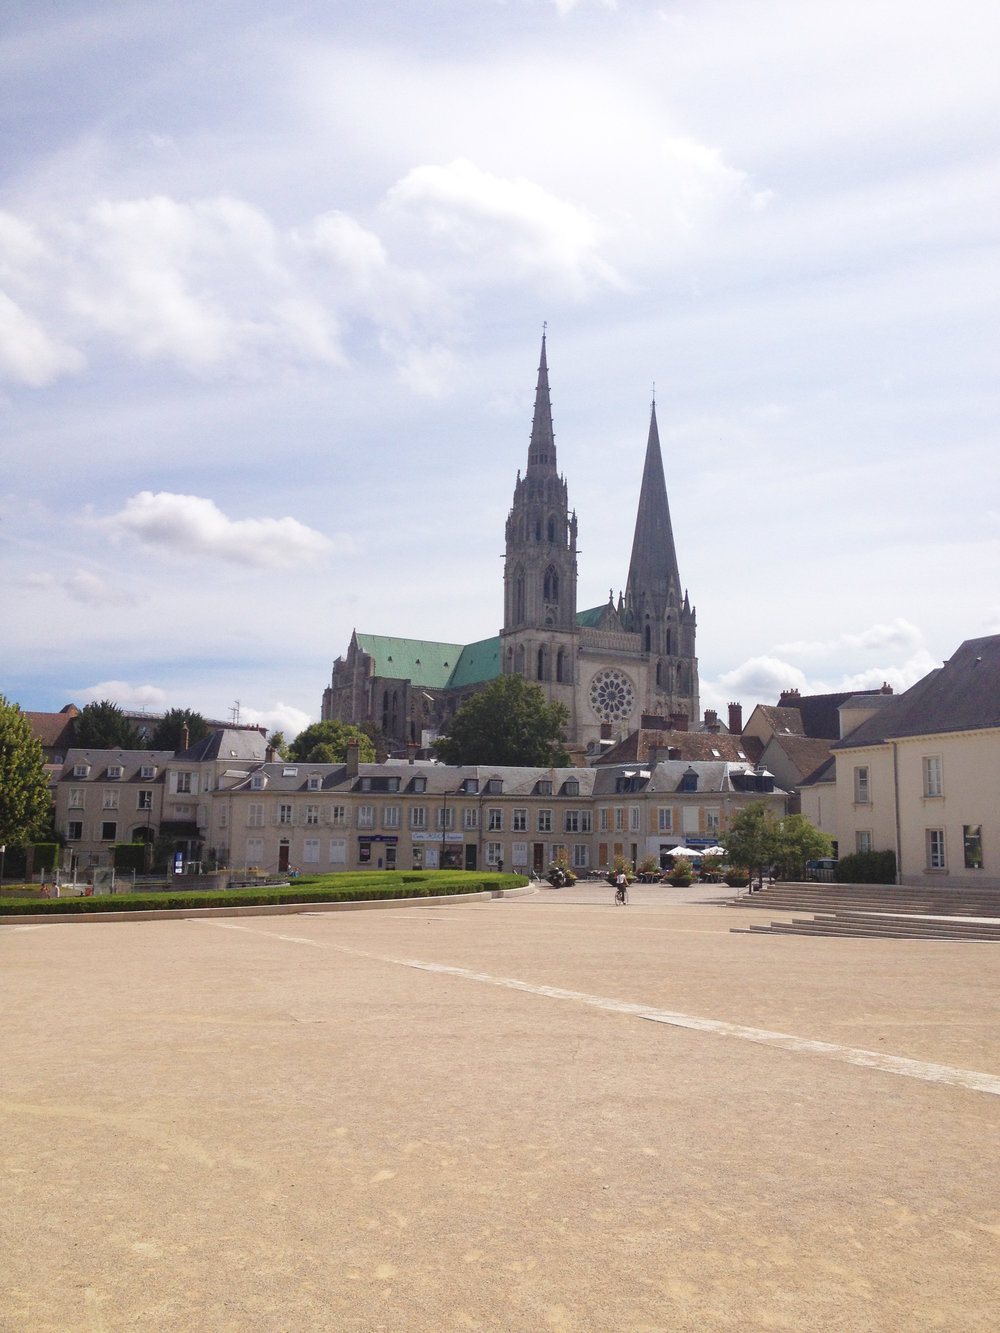 The  beautiful little town of Chartres! We were lucky enough to get a tour of the cathedral from Malcolm Miller, who has devoted over 50 years to studying its architecture and stained glass.